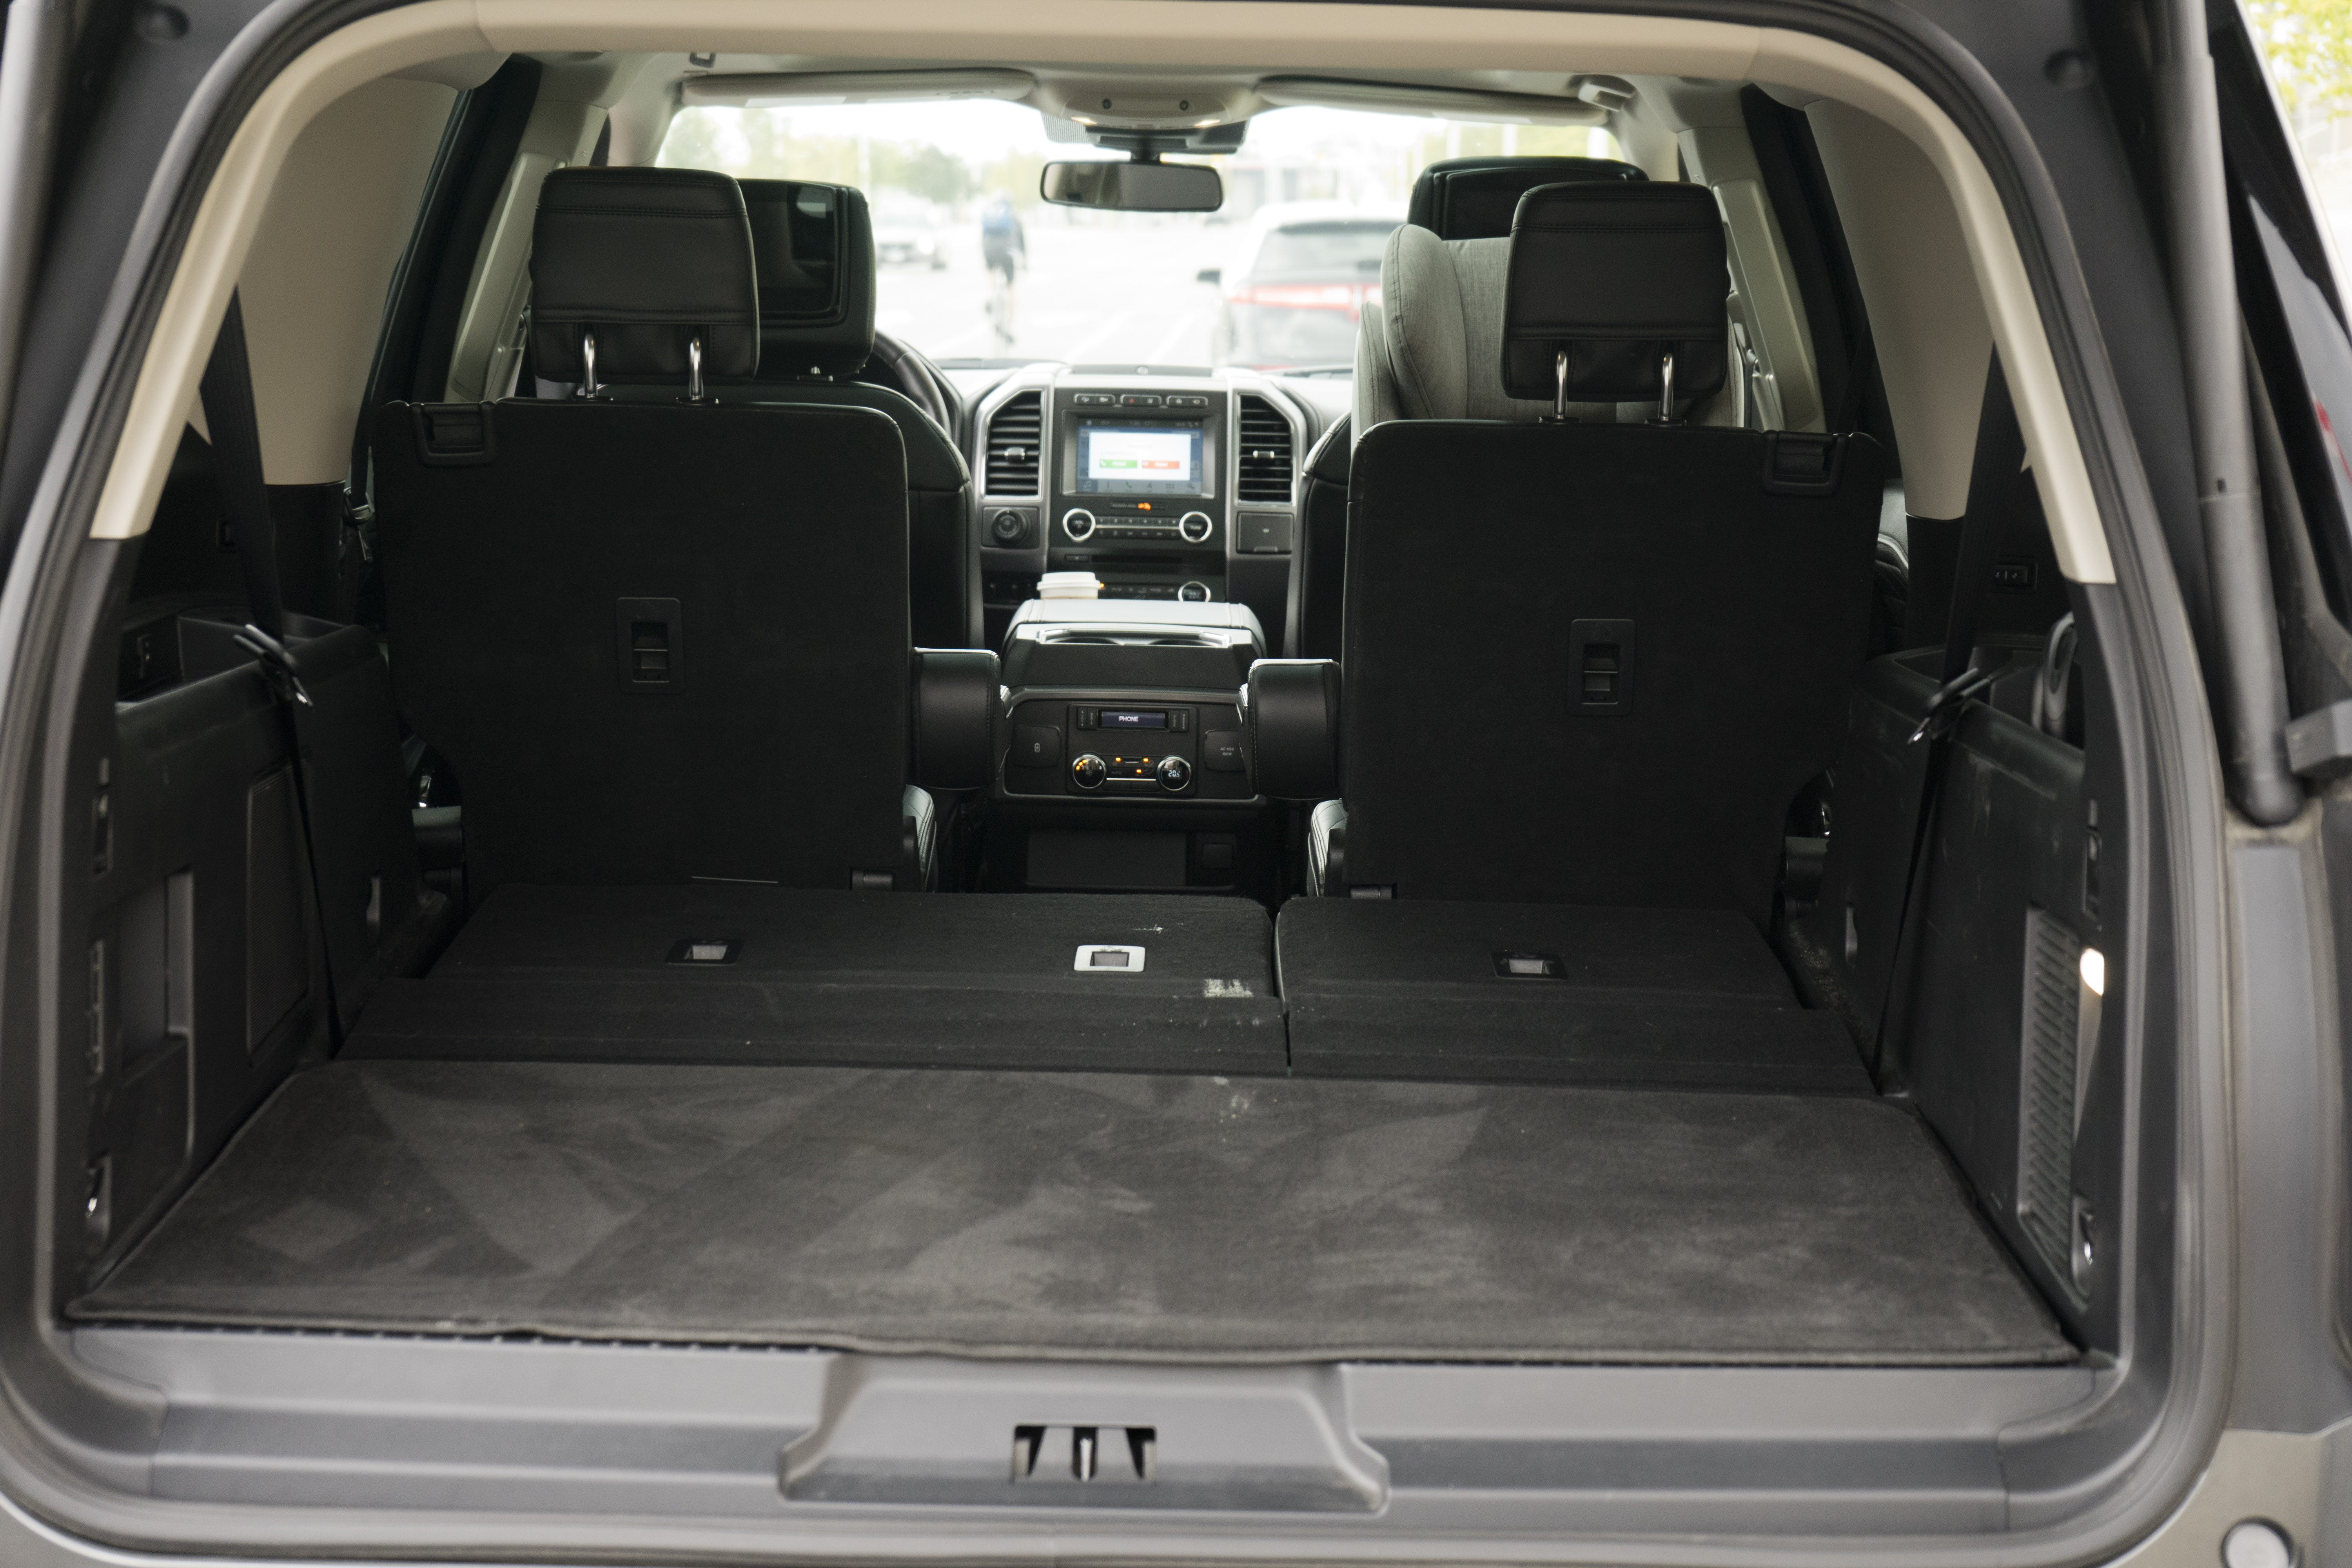 2018 Ford Expedition cargo